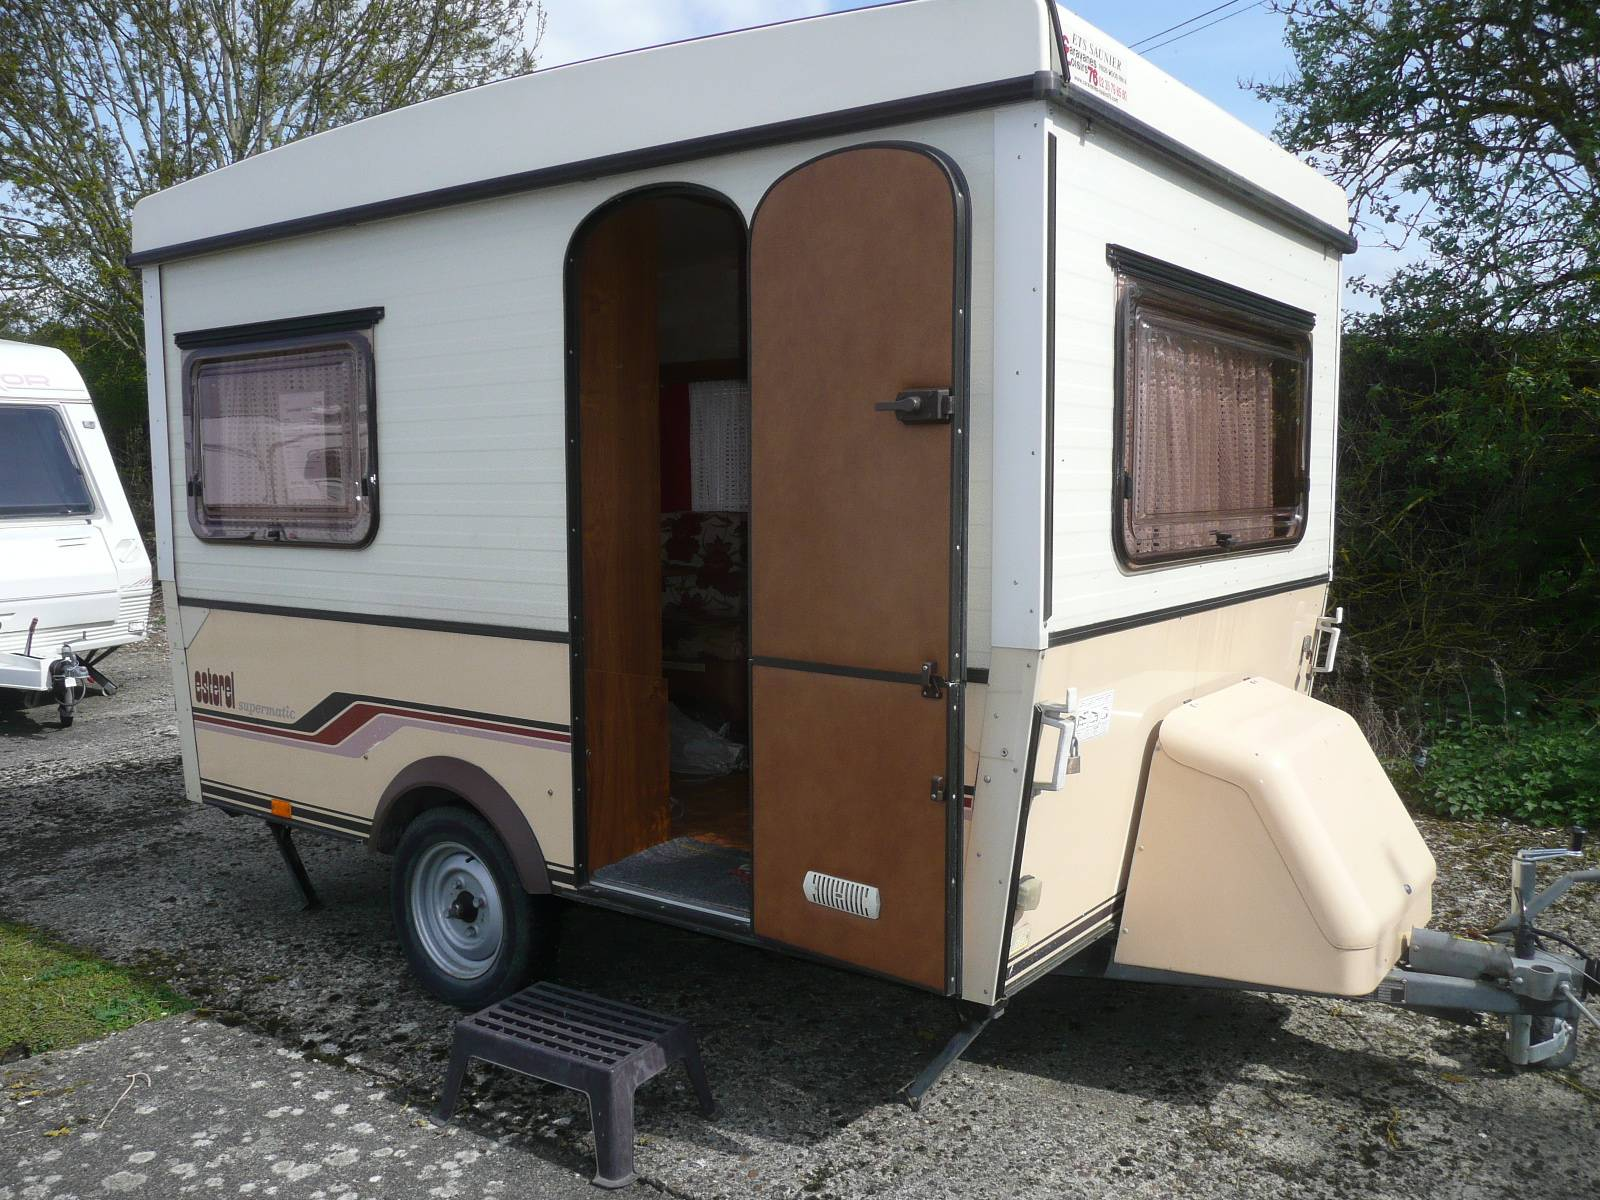 a vendre caravane esterel supermatic 310 rouen boos 76 camping car mobilhome rouen. Black Bedroom Furniture Sets. Home Design Ideas